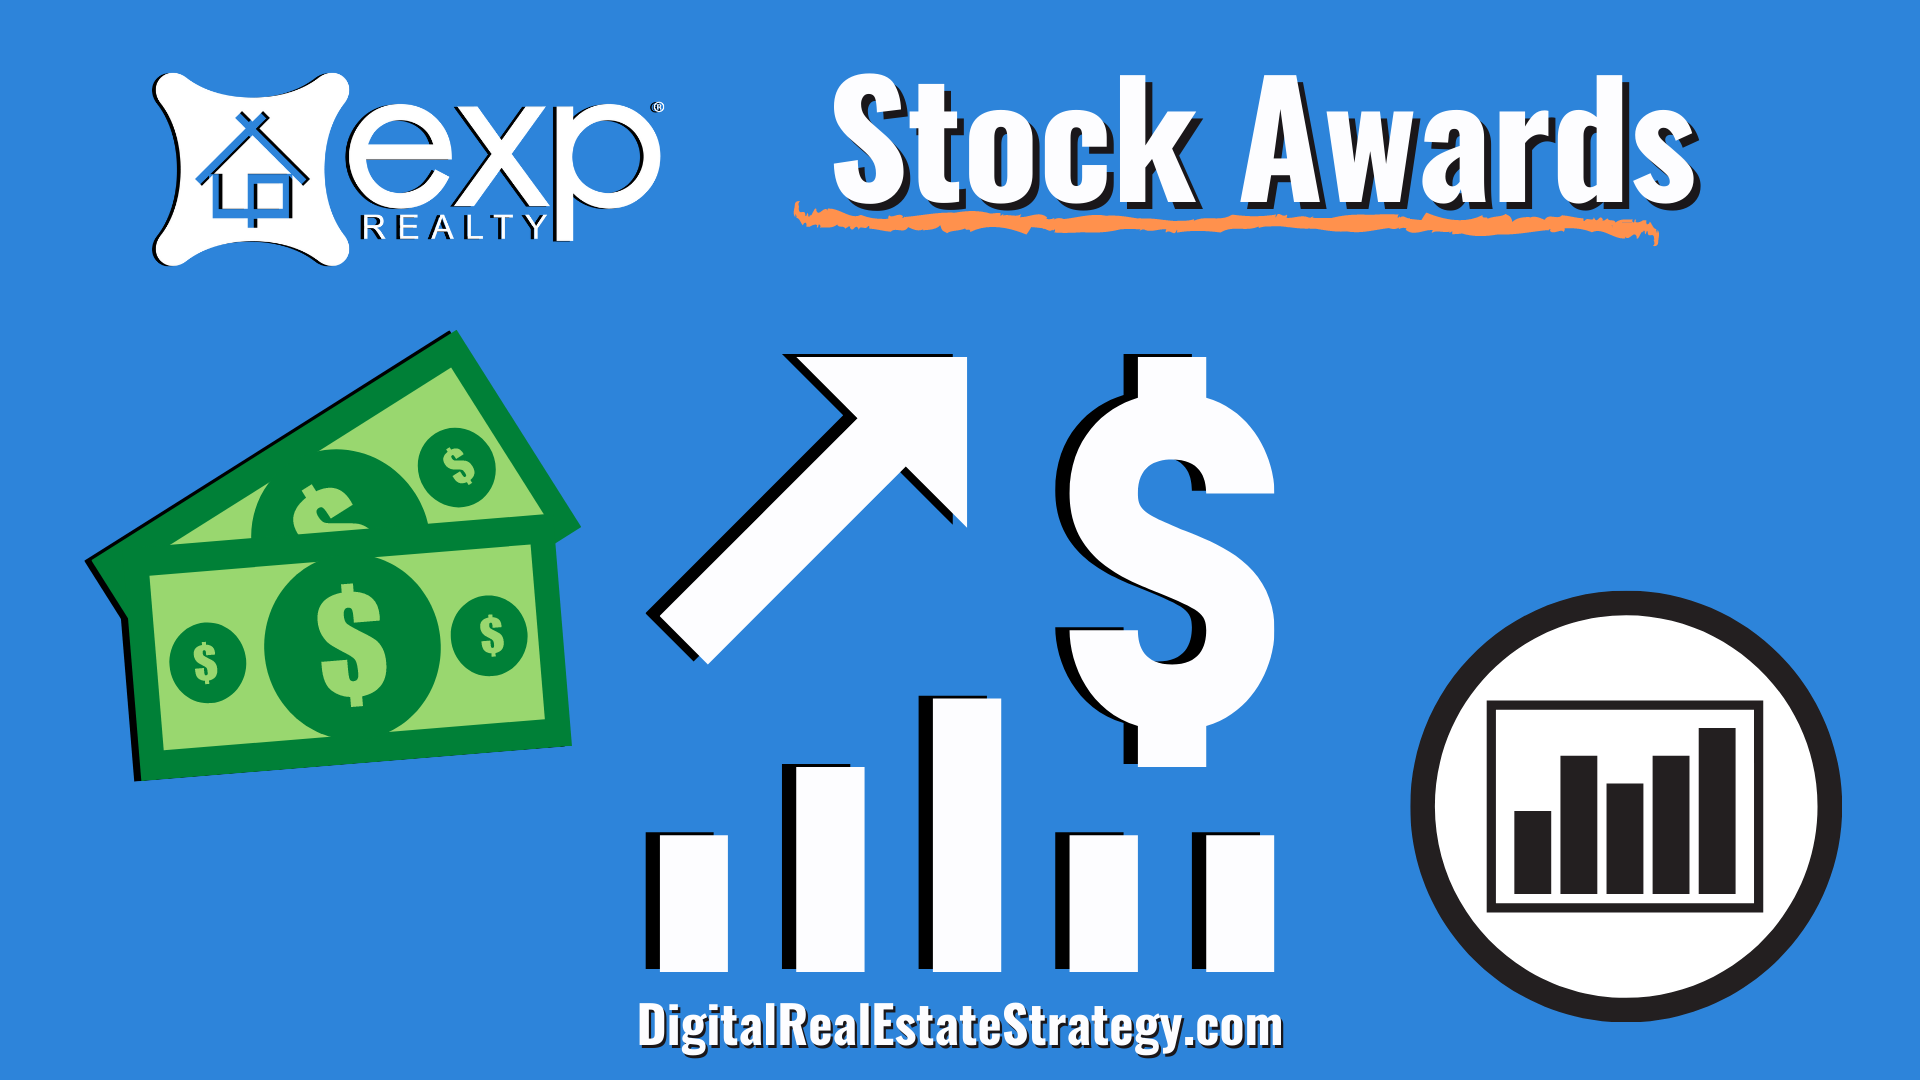 eXp Realty Review - Jerome Lewis - eXp Realty Stock Awards - Digital Real Estate Strategy